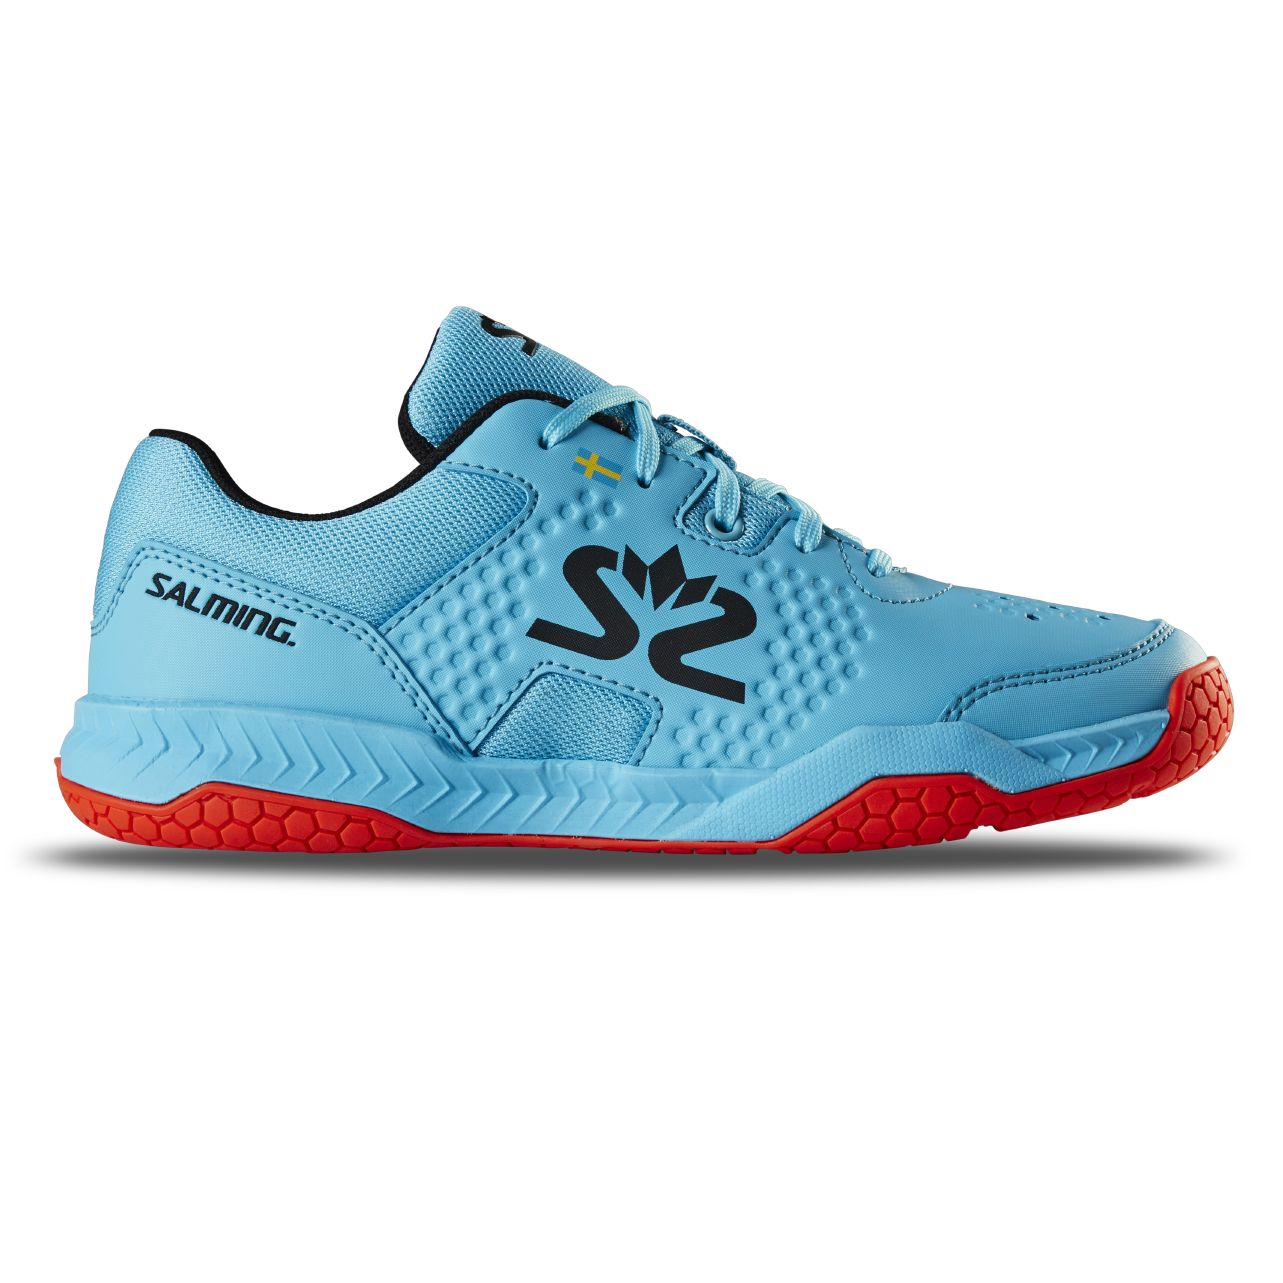 Salming Hawk Court Shoe Junior Blue/Red 4 UK - 36 EUR - 23,5 cm